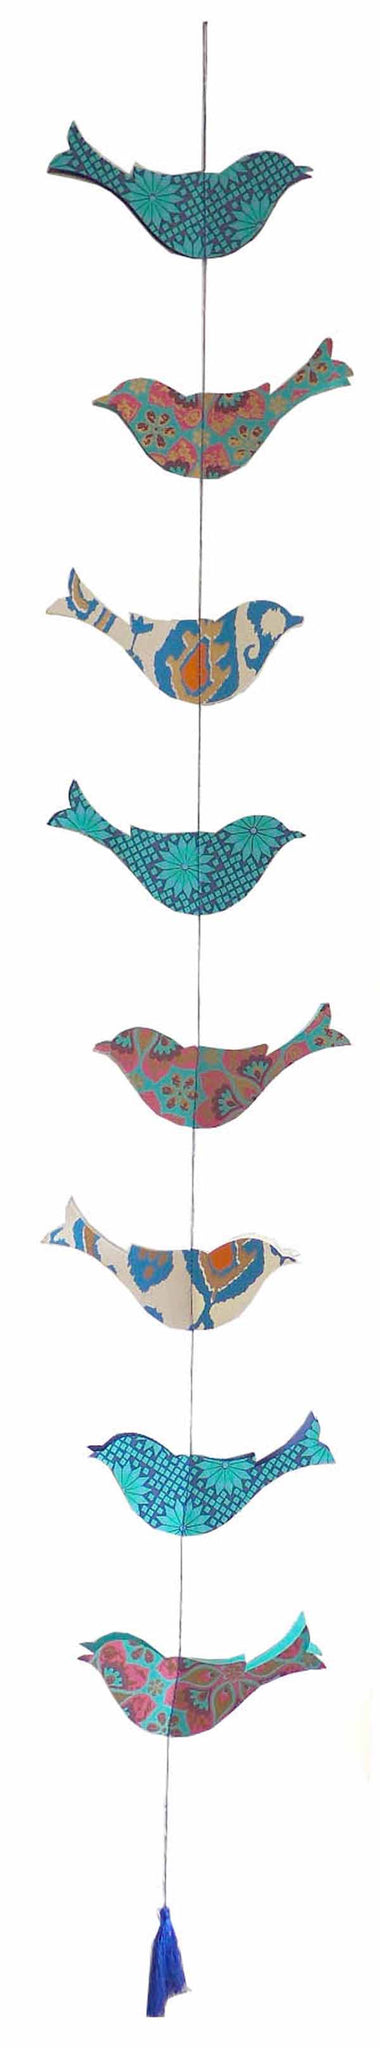 Hanging Paper Bird Decoration